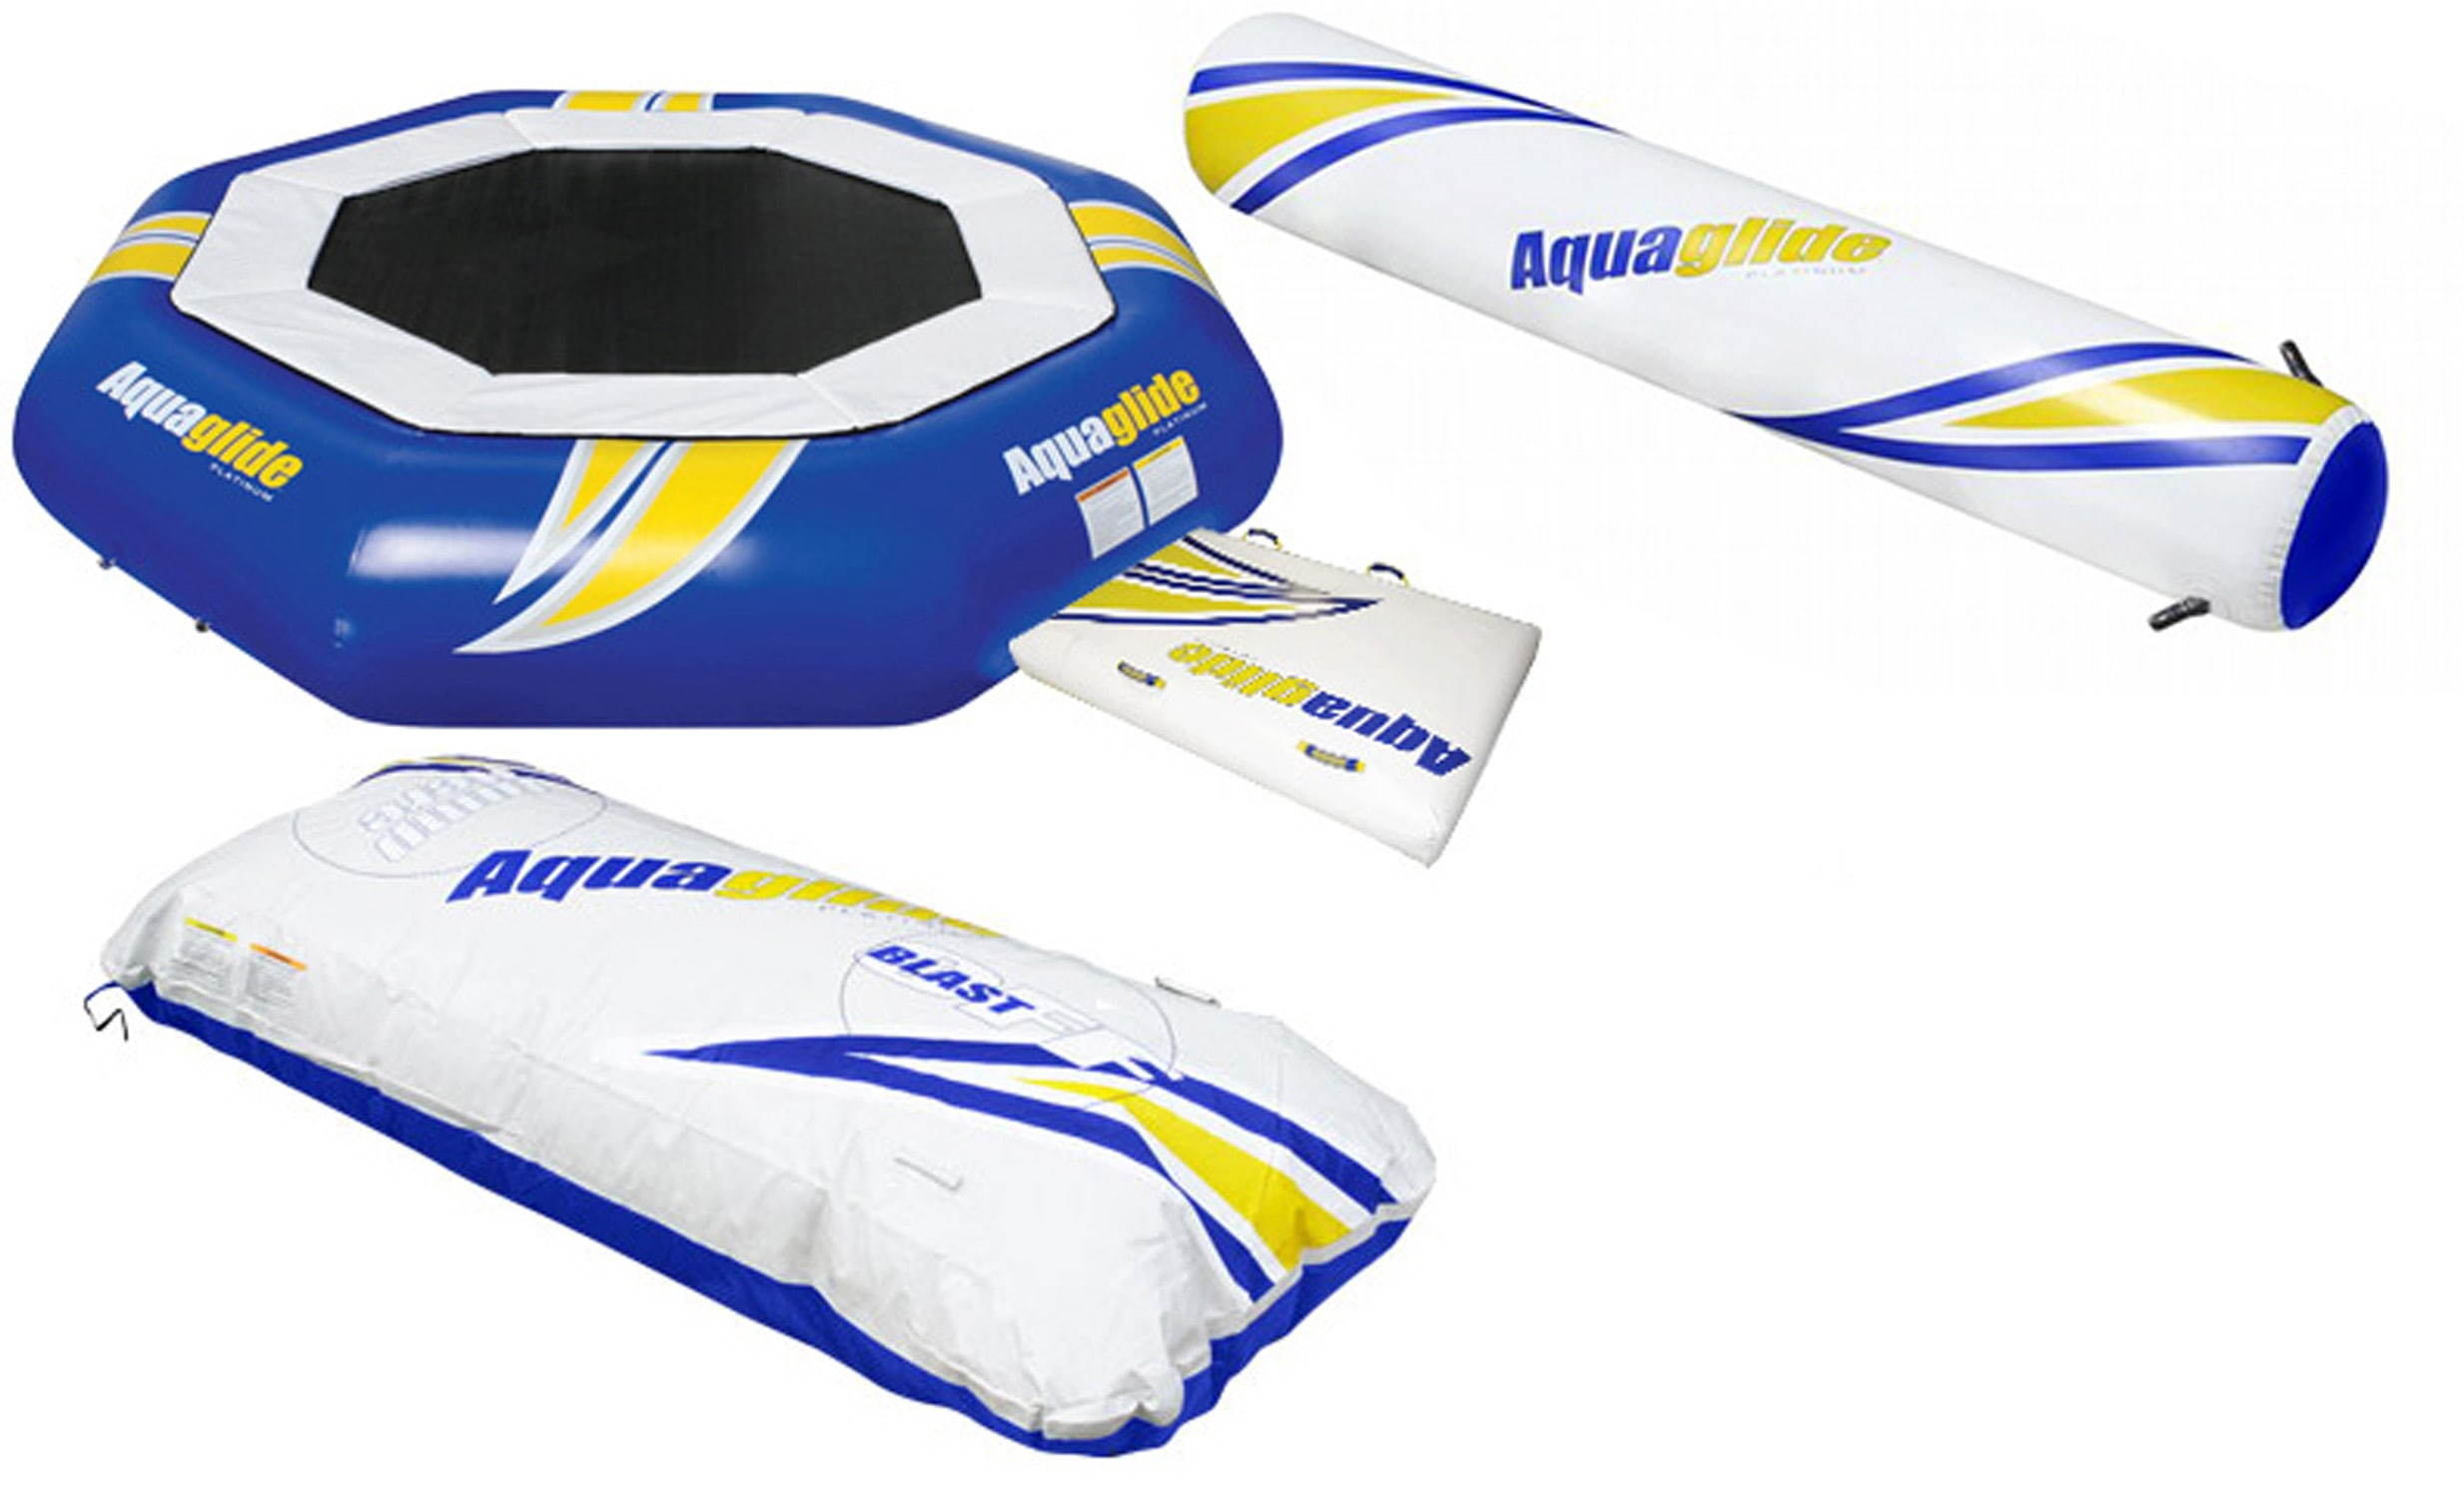 Click here for Aquaglide Supertramp Aquapark Bouncer 17' w/... prices